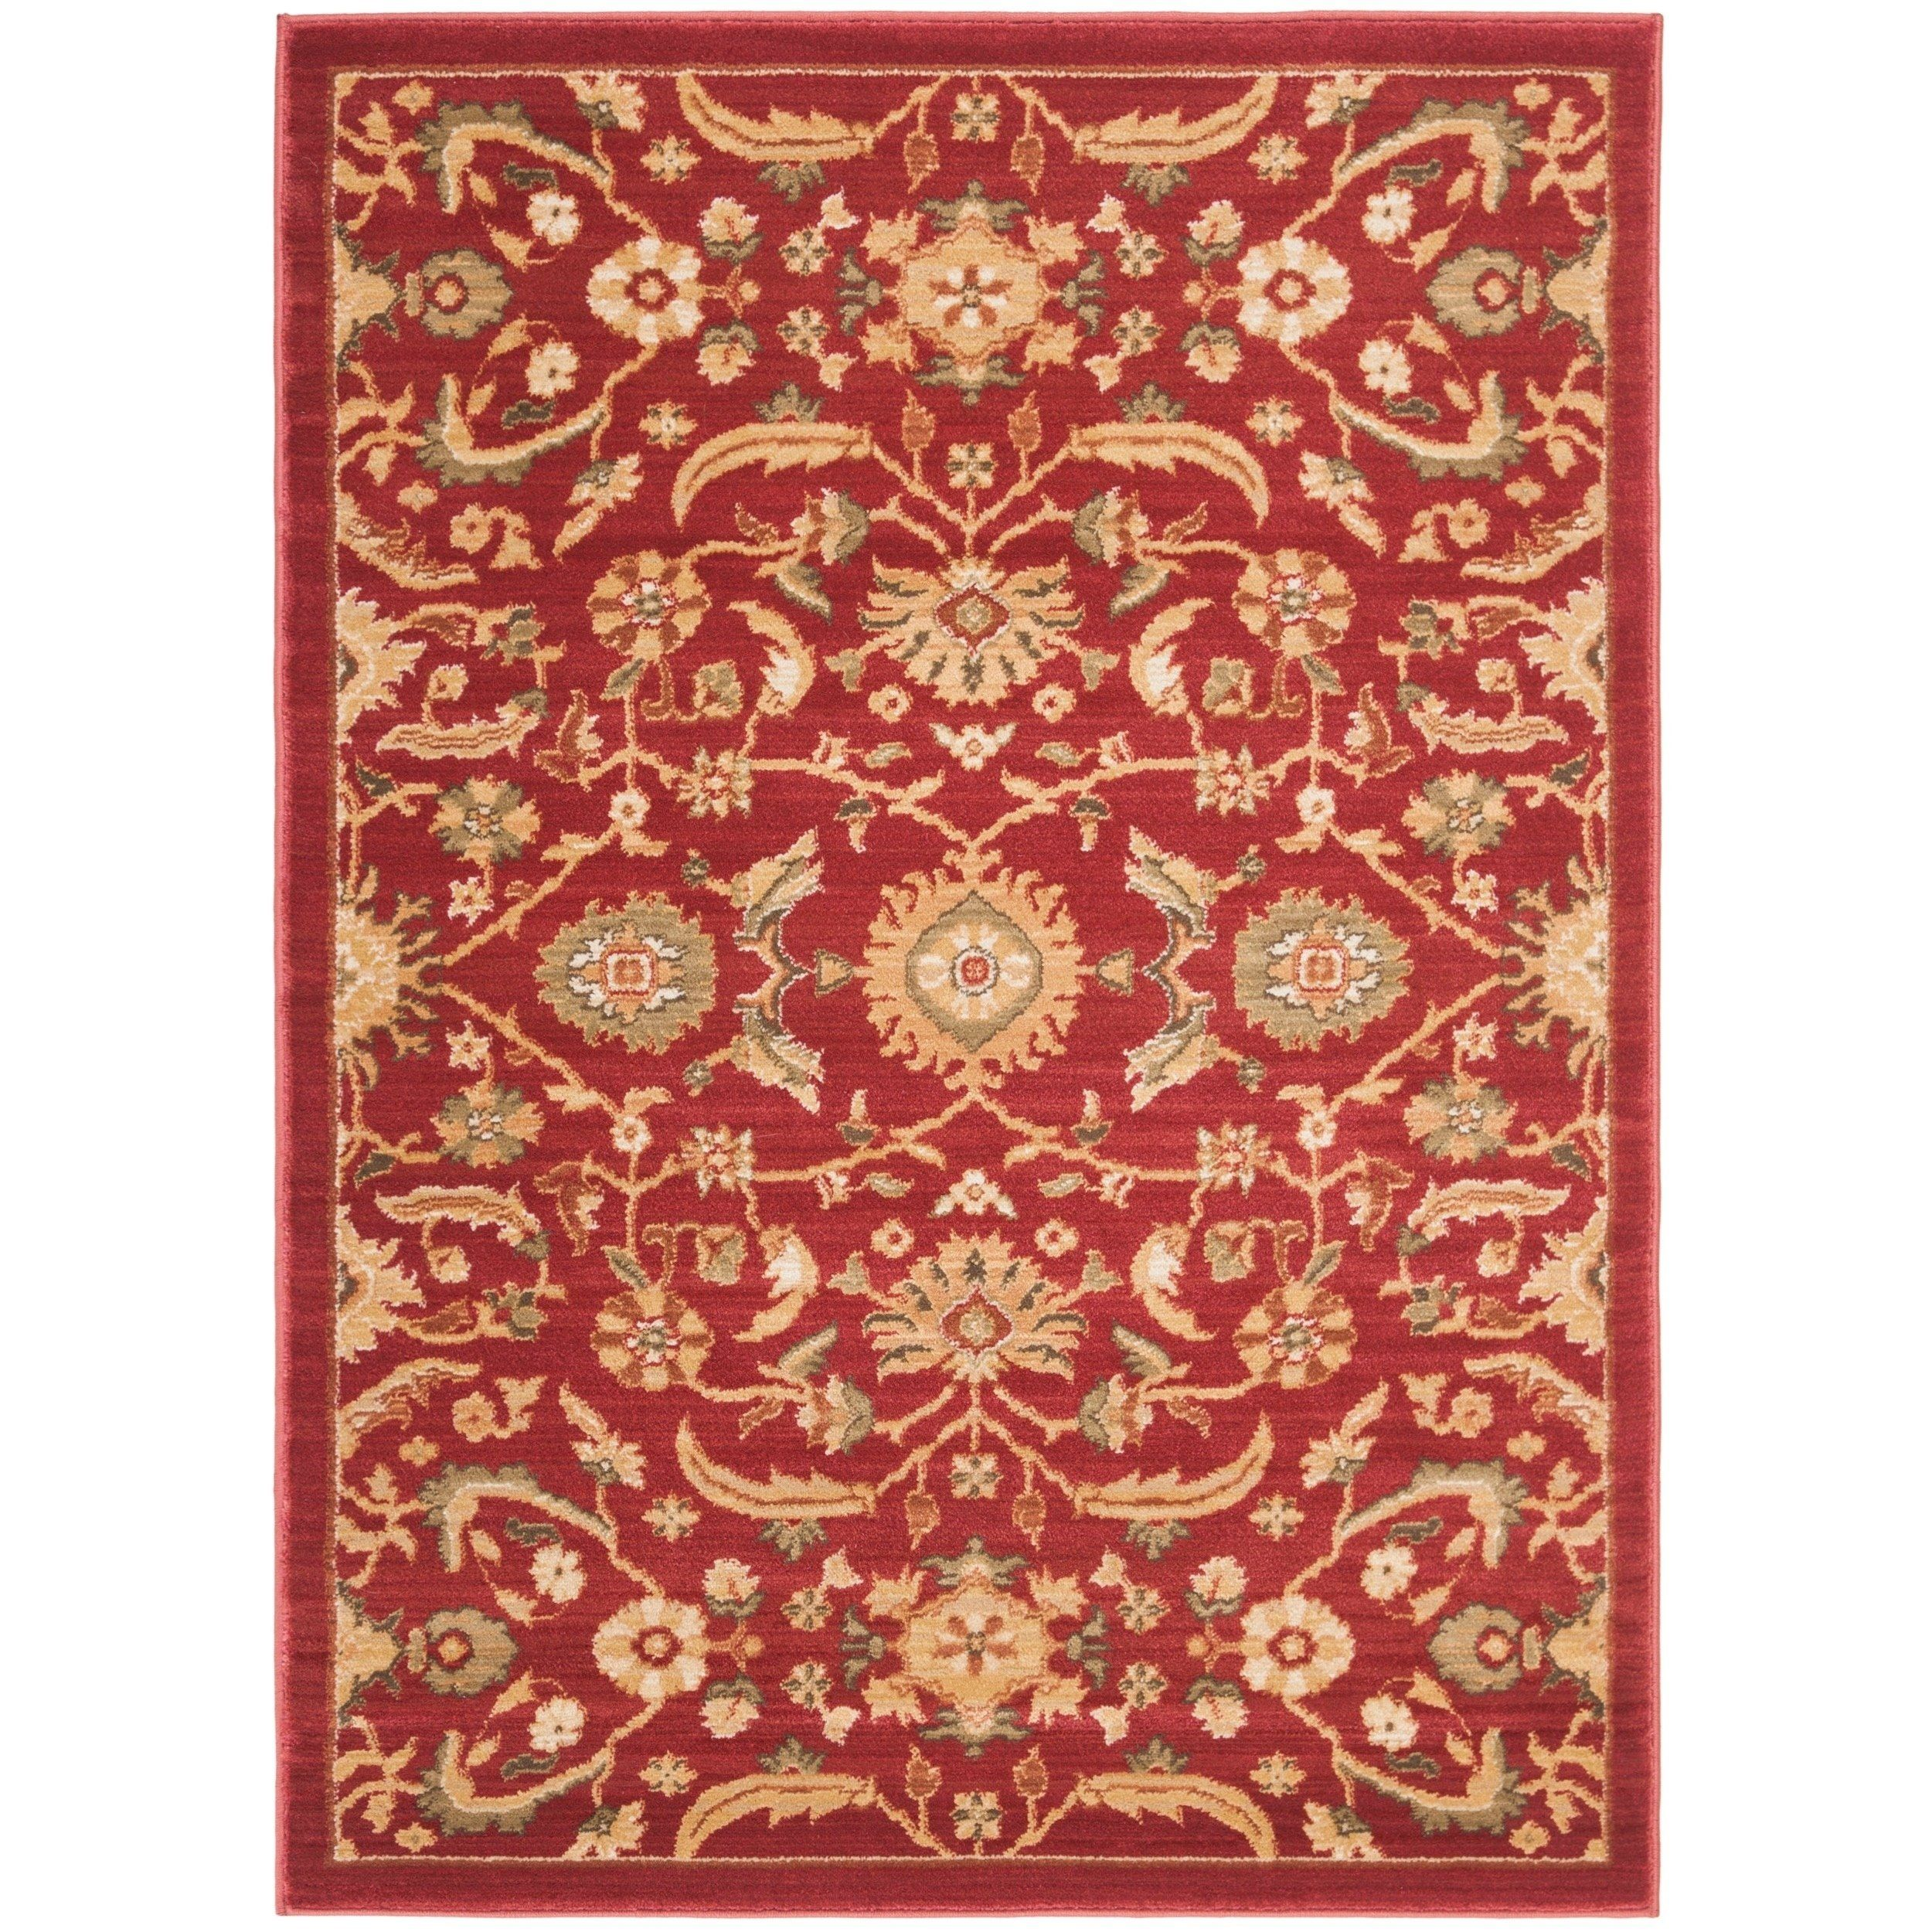 Safavieh Oushak Red Gold Area Rug 4 X 5 7 4 X 5 7 Red